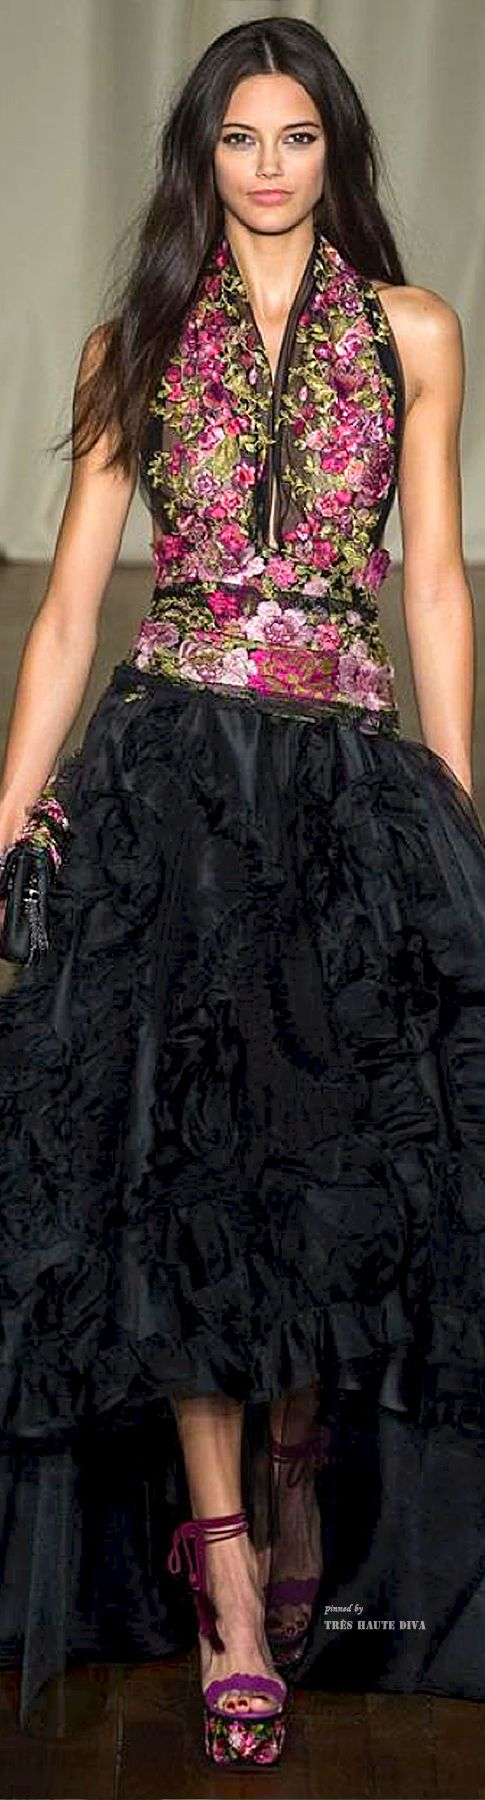 LFW Marchesa Spring/Summer 2015 RTW. Love everything about this!